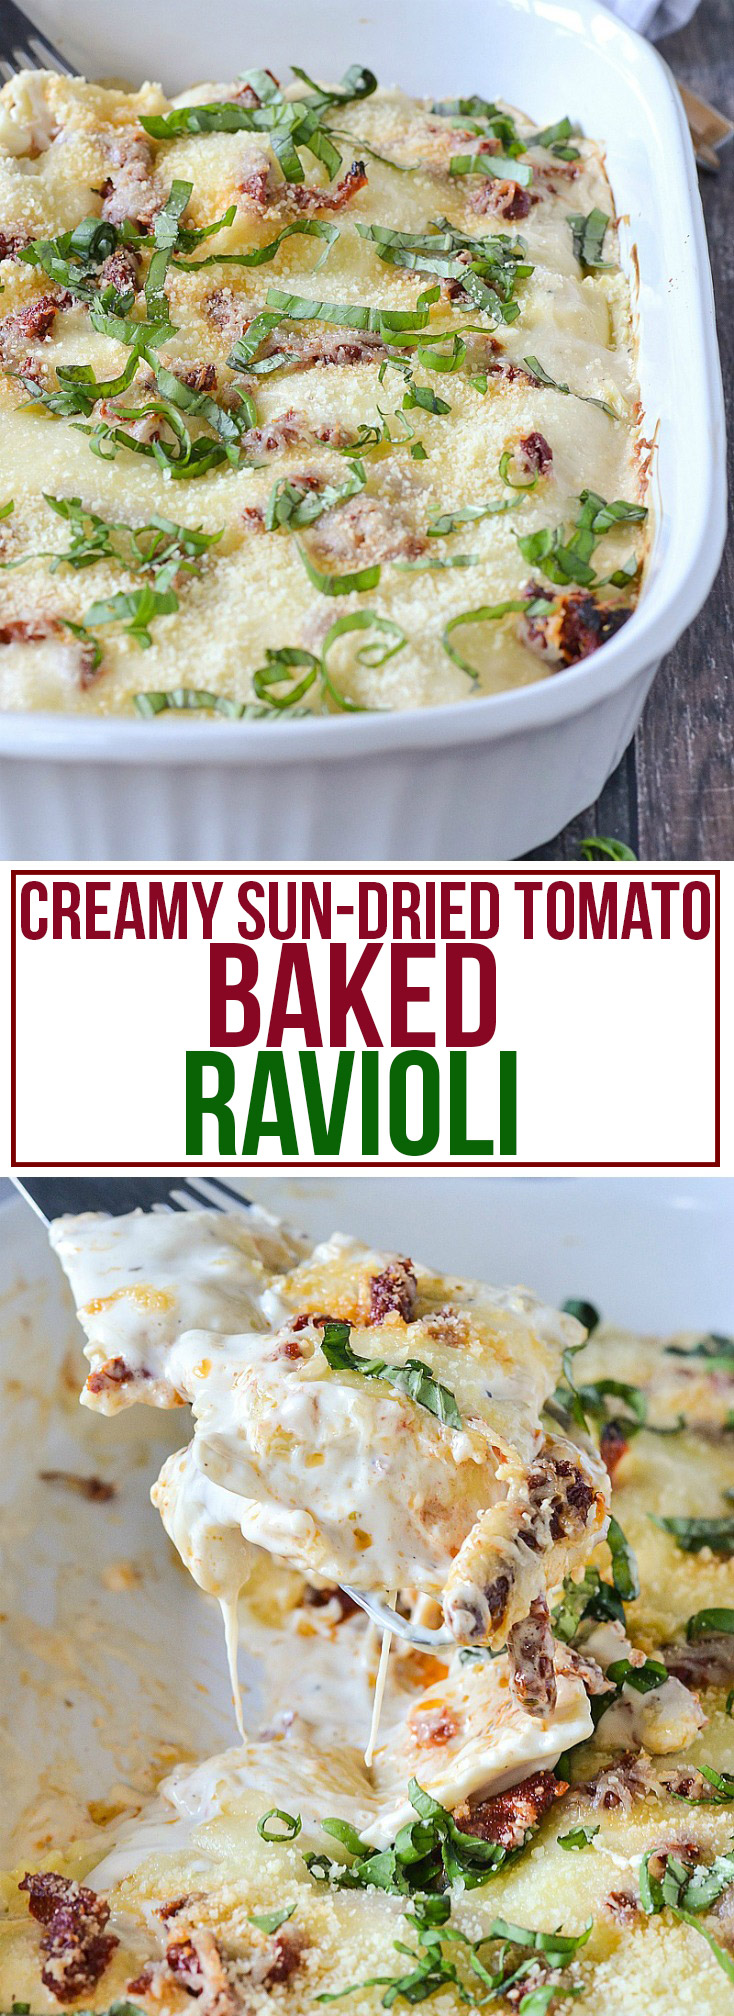 Creamy Sun-Dried Tomato Baked Ravioli from www.motherthyme.com